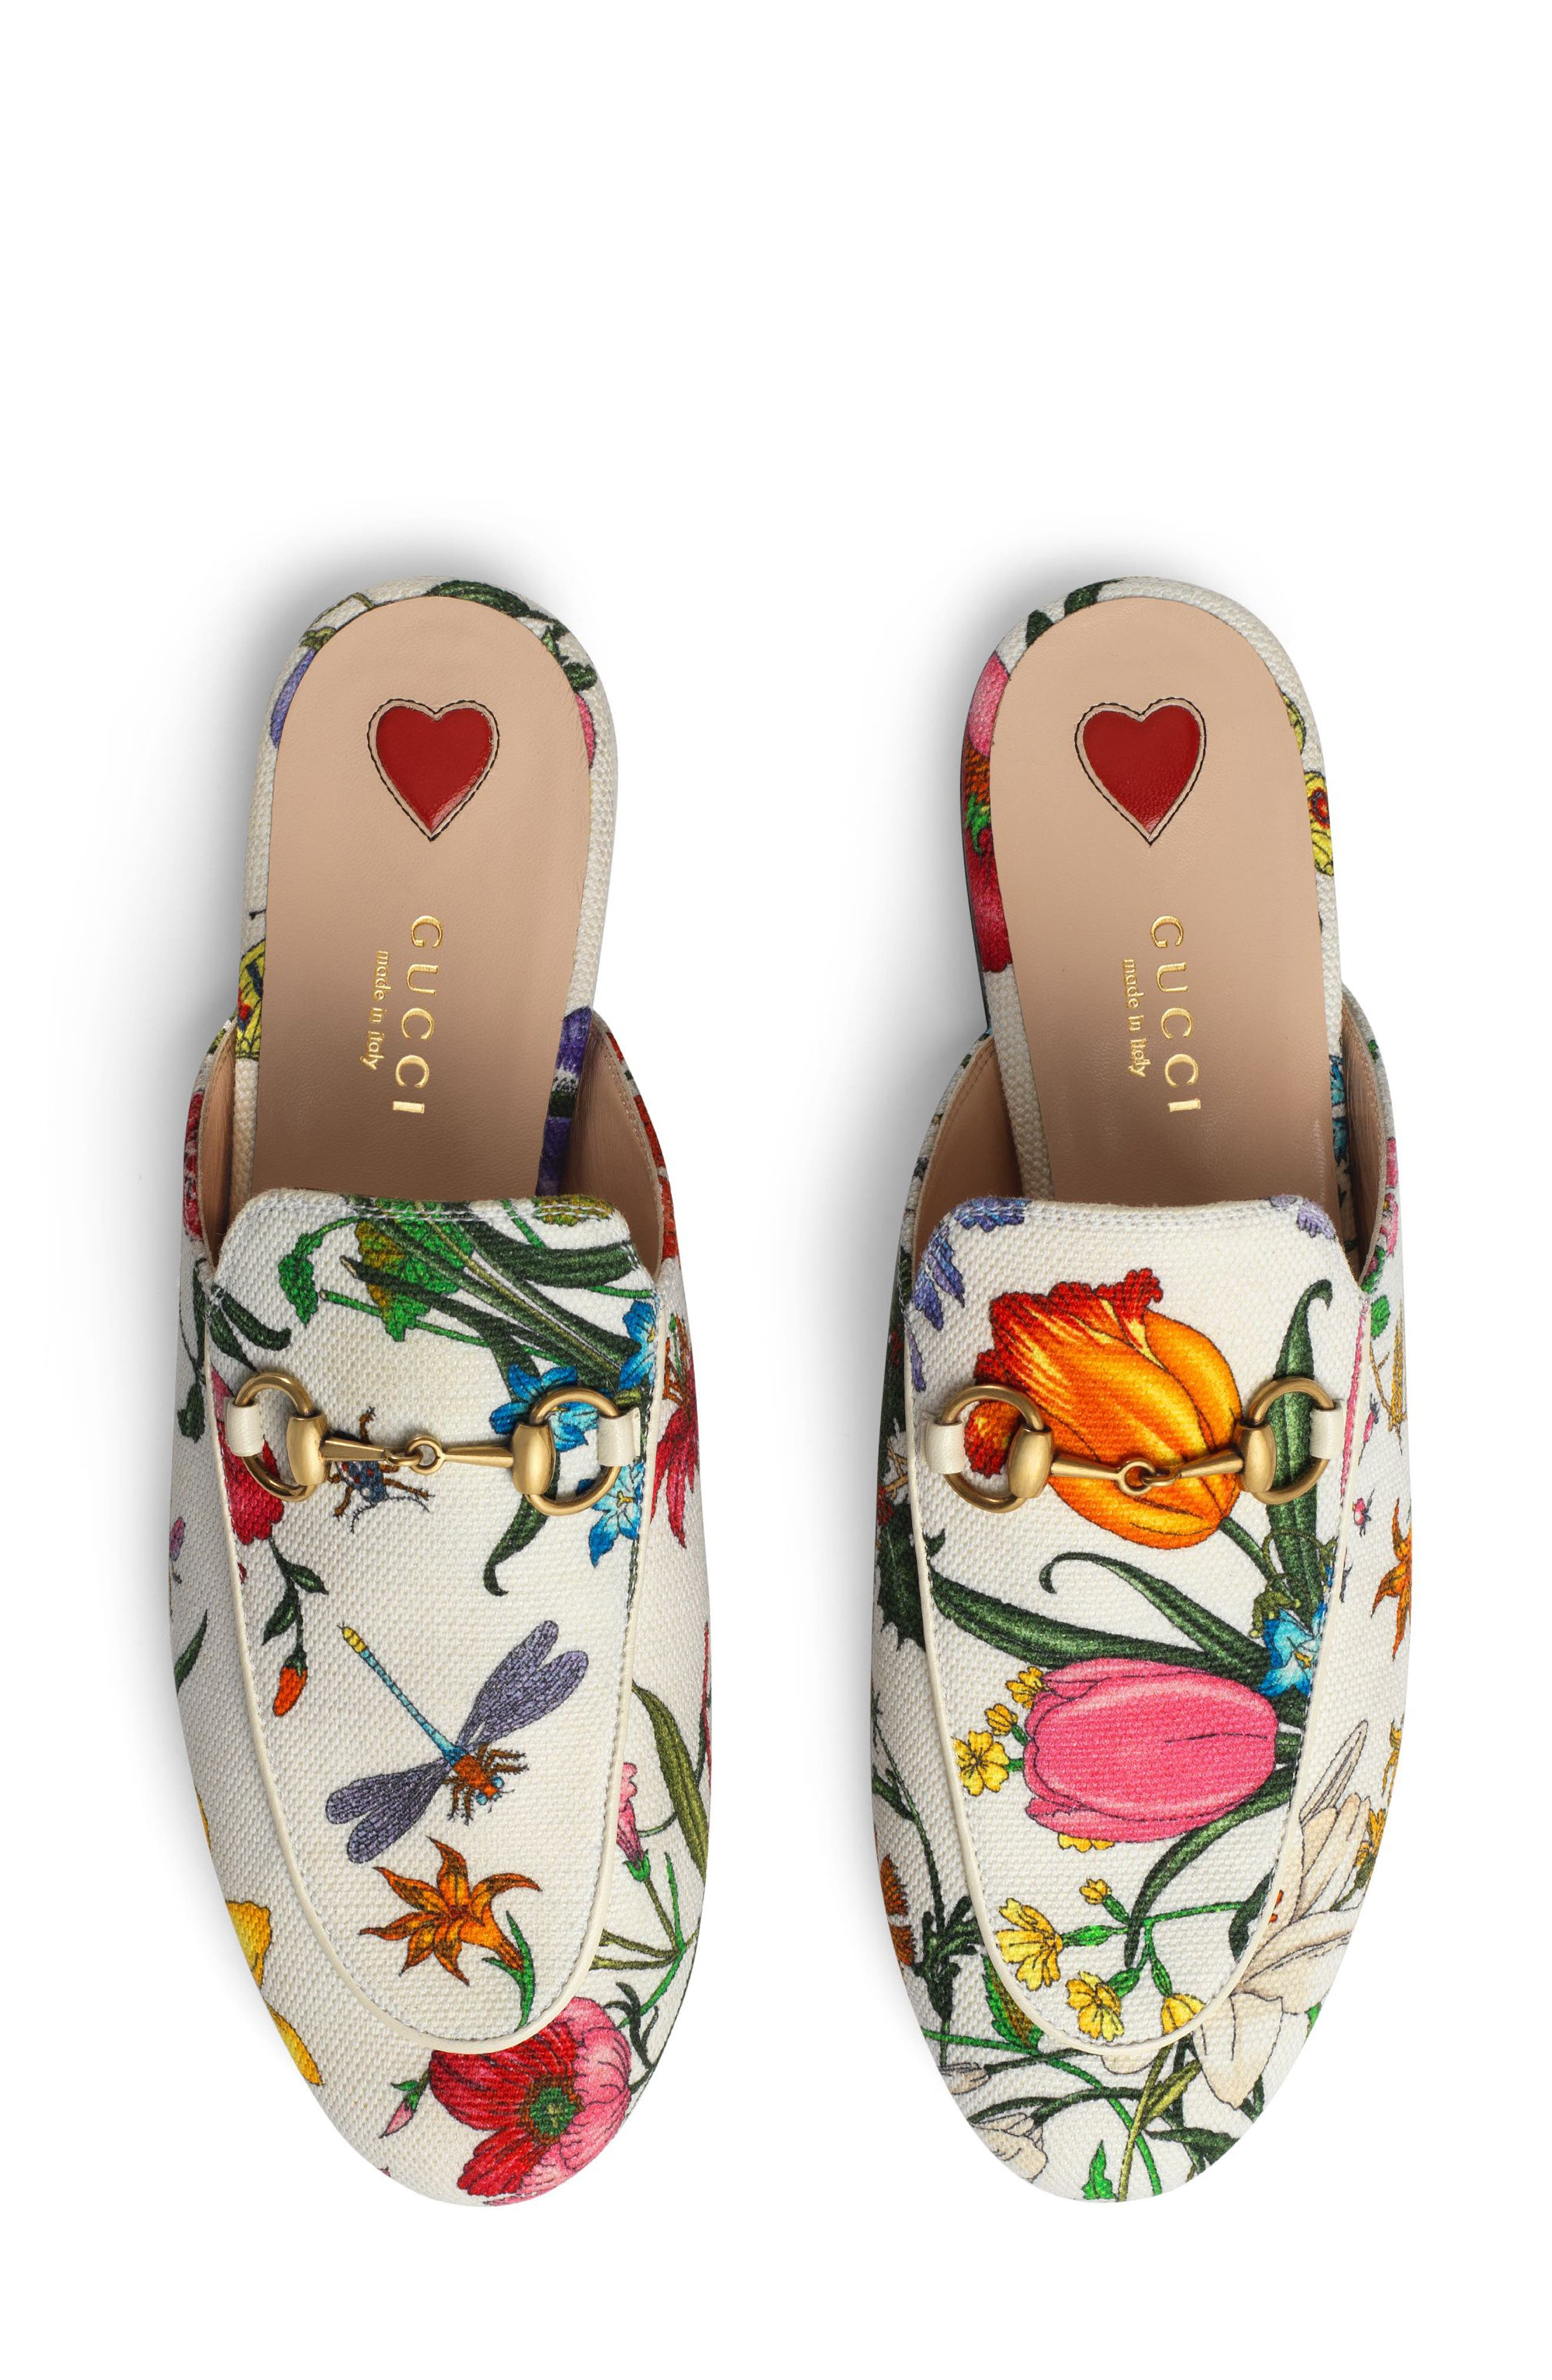 GUCCI, Princetown Loafer Mule, Alternate thumbnail 4, color, WHITE FLORAL